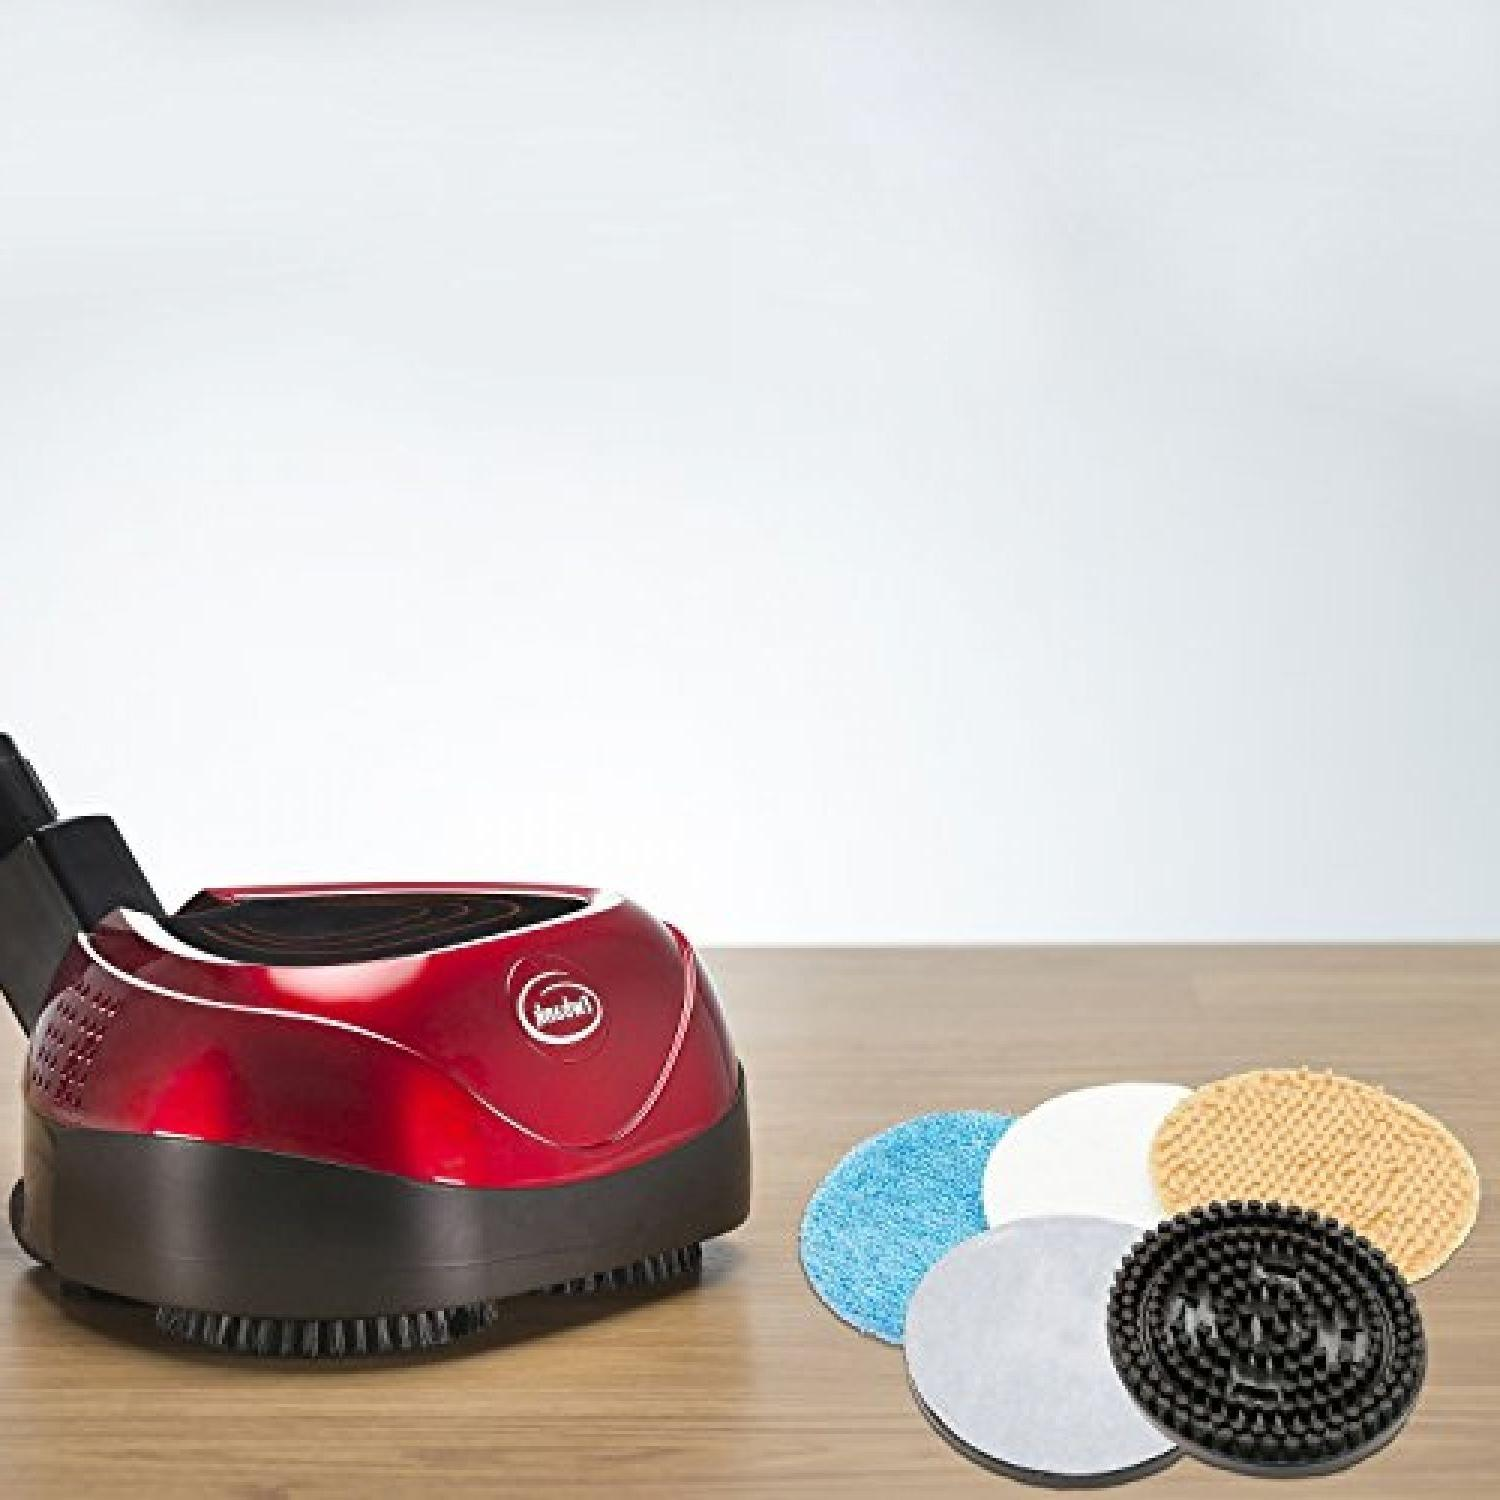 Commercial Floor Scrubber Cleaning Supplies